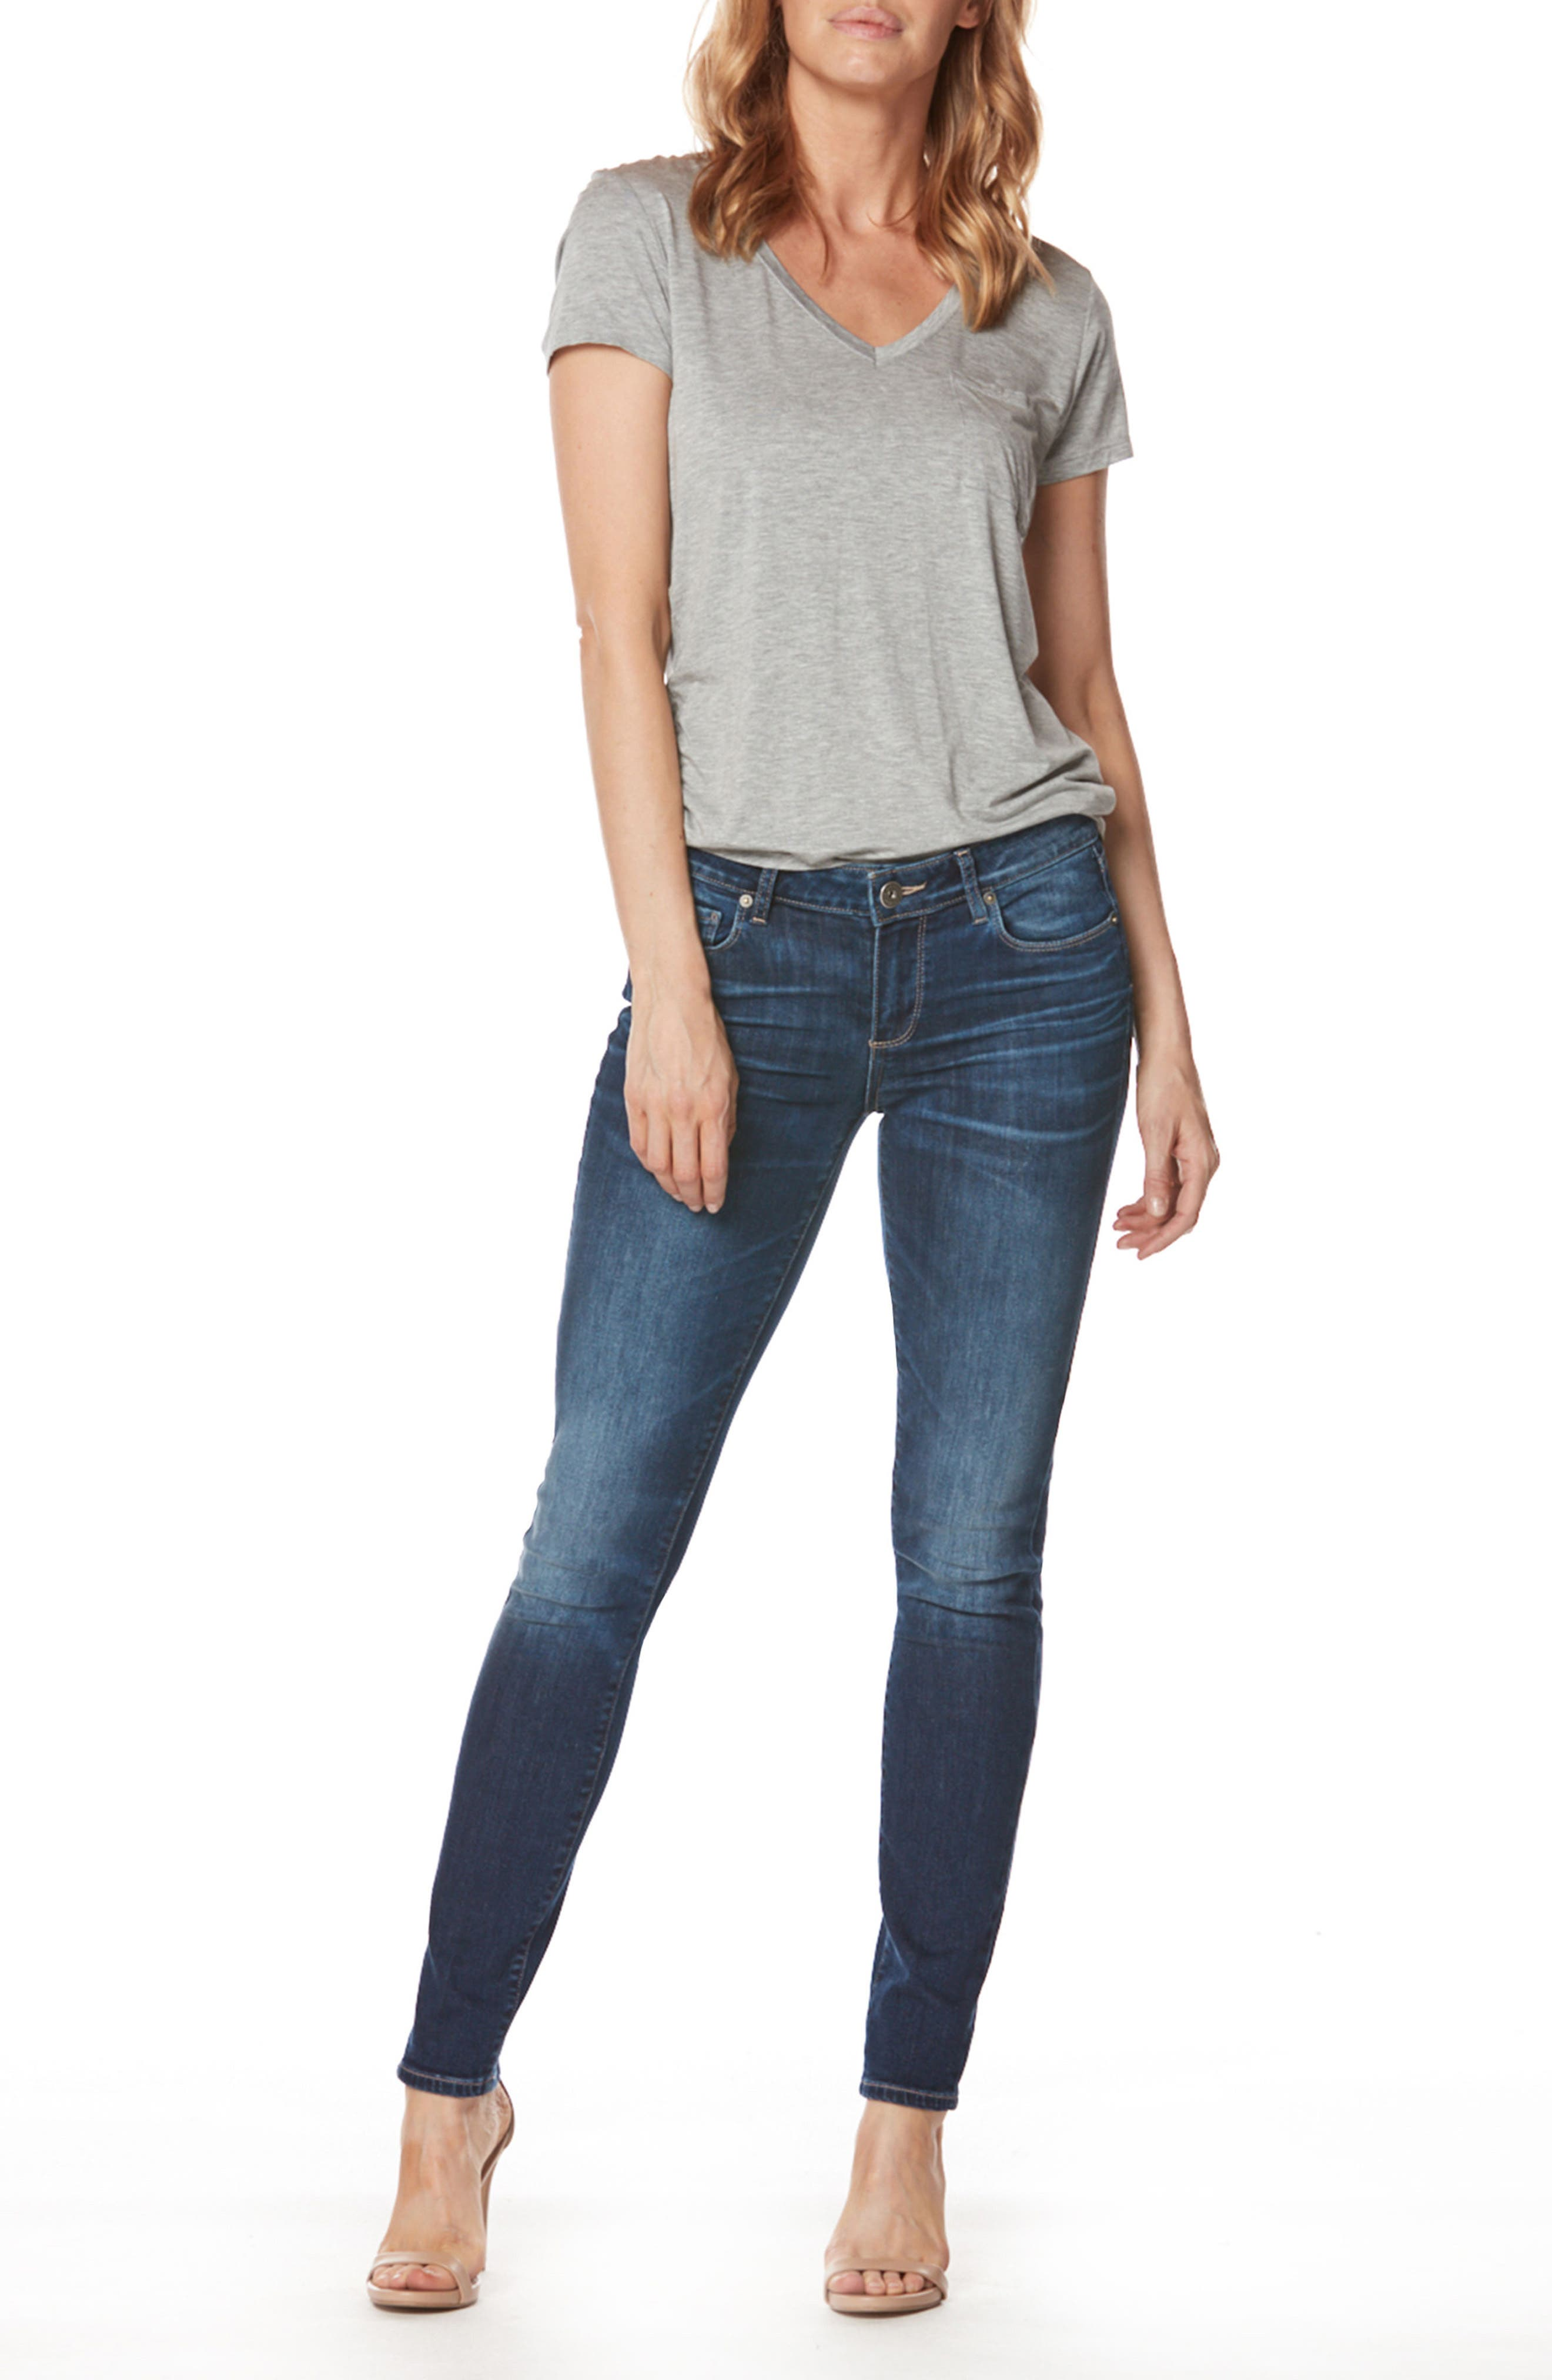 Transcend - Verdugo Ultra Skinny Jeans,                             Alternate thumbnail 3, color,                             400